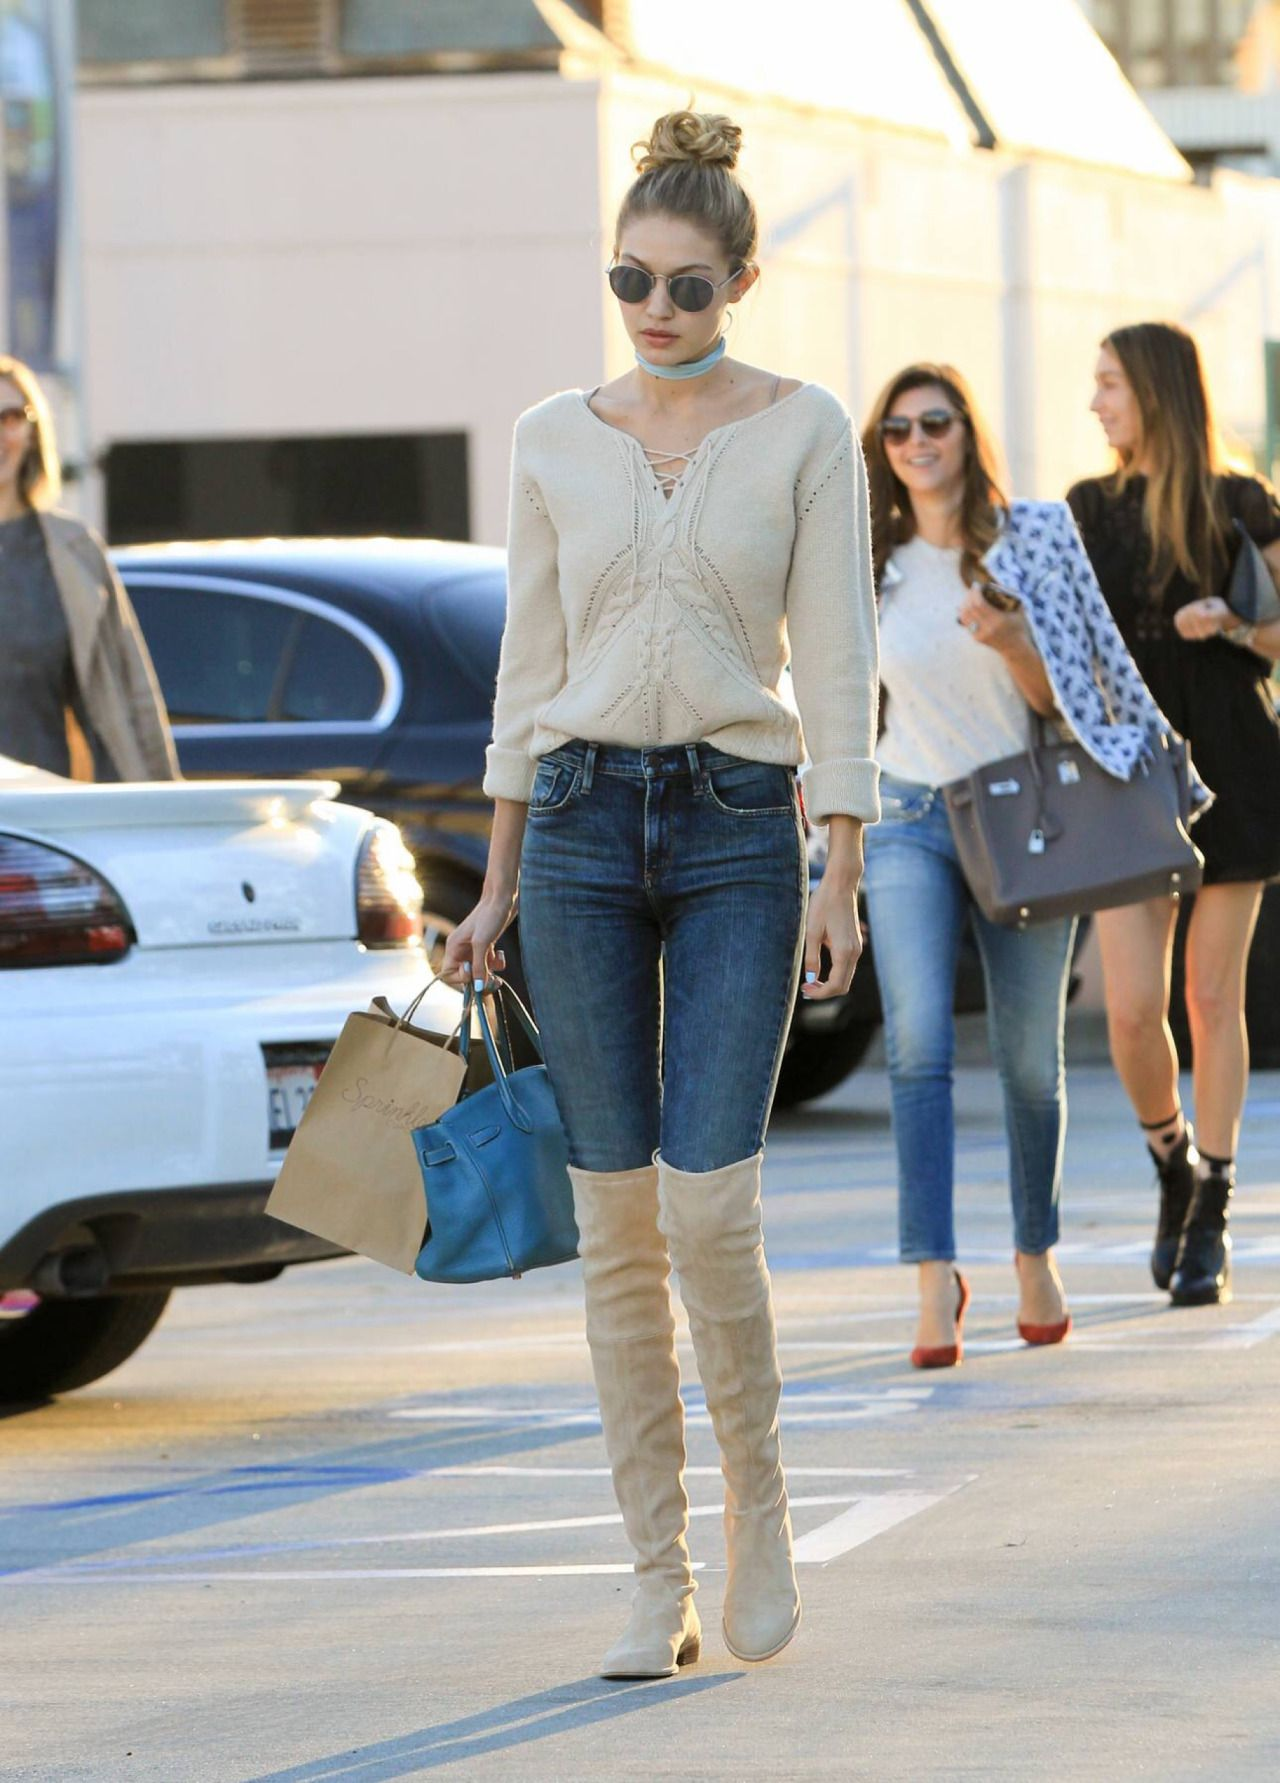 November 17: Gigi Hadid out and about in Los Angeles, California.